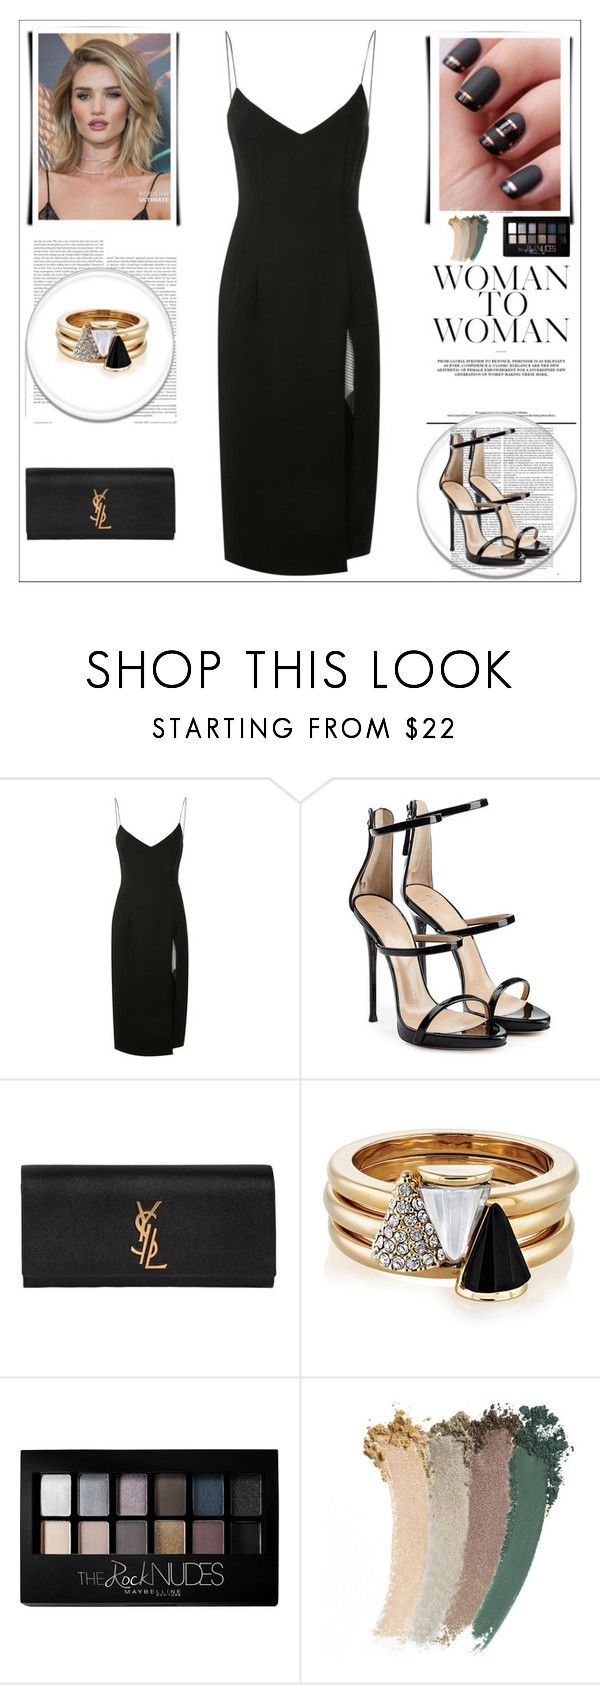 """but the one I'm looking for is right in front of me"" by noble2pa ❤ liked on Polyvore featuring Whiteley, Christopher Esber, Giuseppe Zanotti, Yves Saint Laurent, Brixton, Maybelline and Gucci"